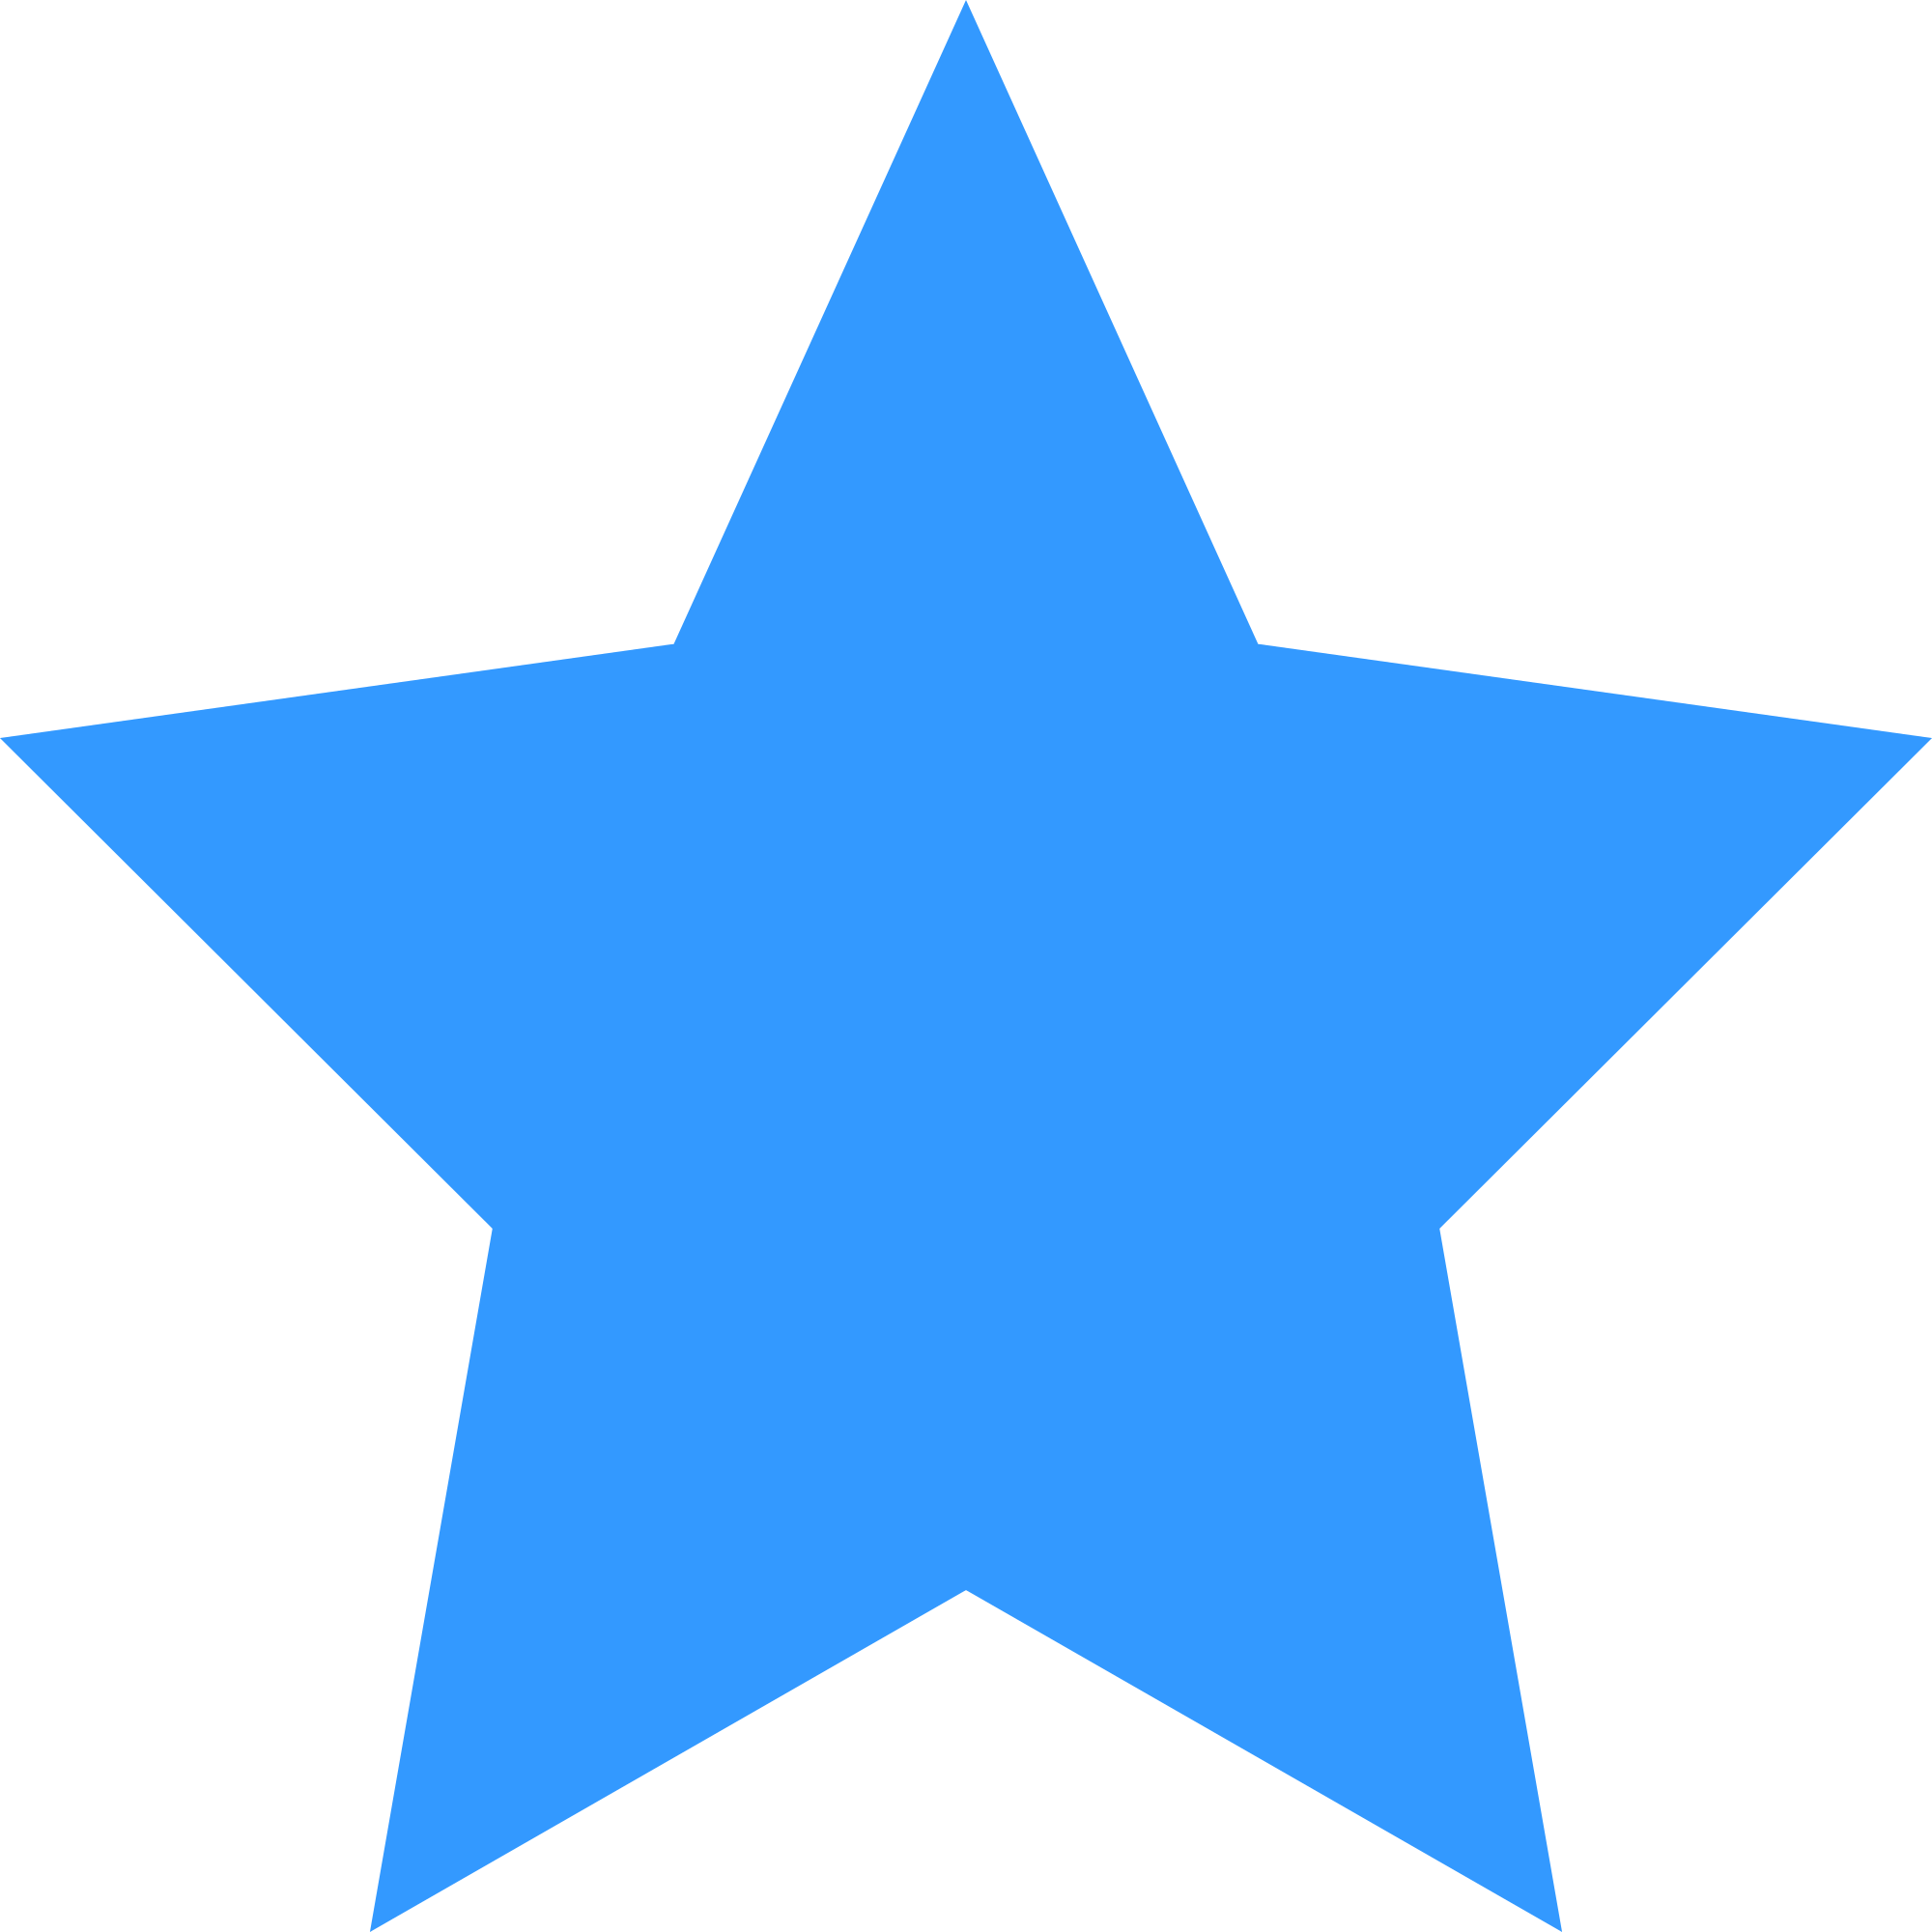 Star svg #13, Download drawings